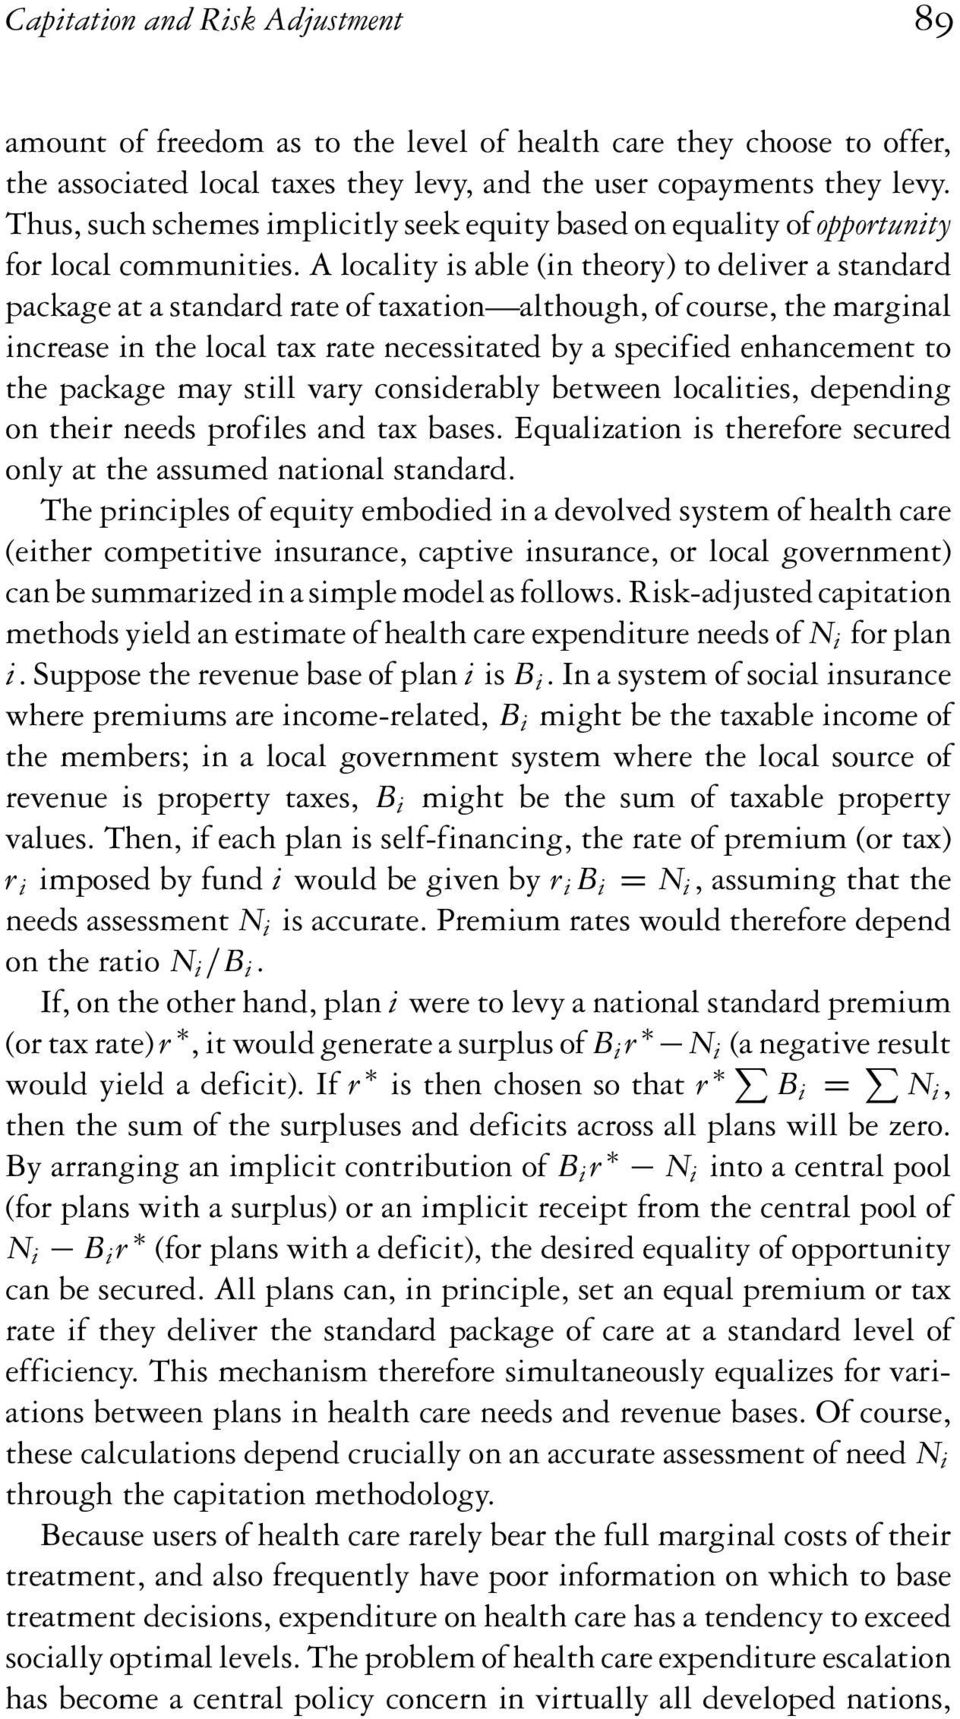 A locality is able (in theory) to deliver a standard package at a standard rate of taxation although, of course, the marginal increase in the local tax rate necessitated by a specified enhancement to